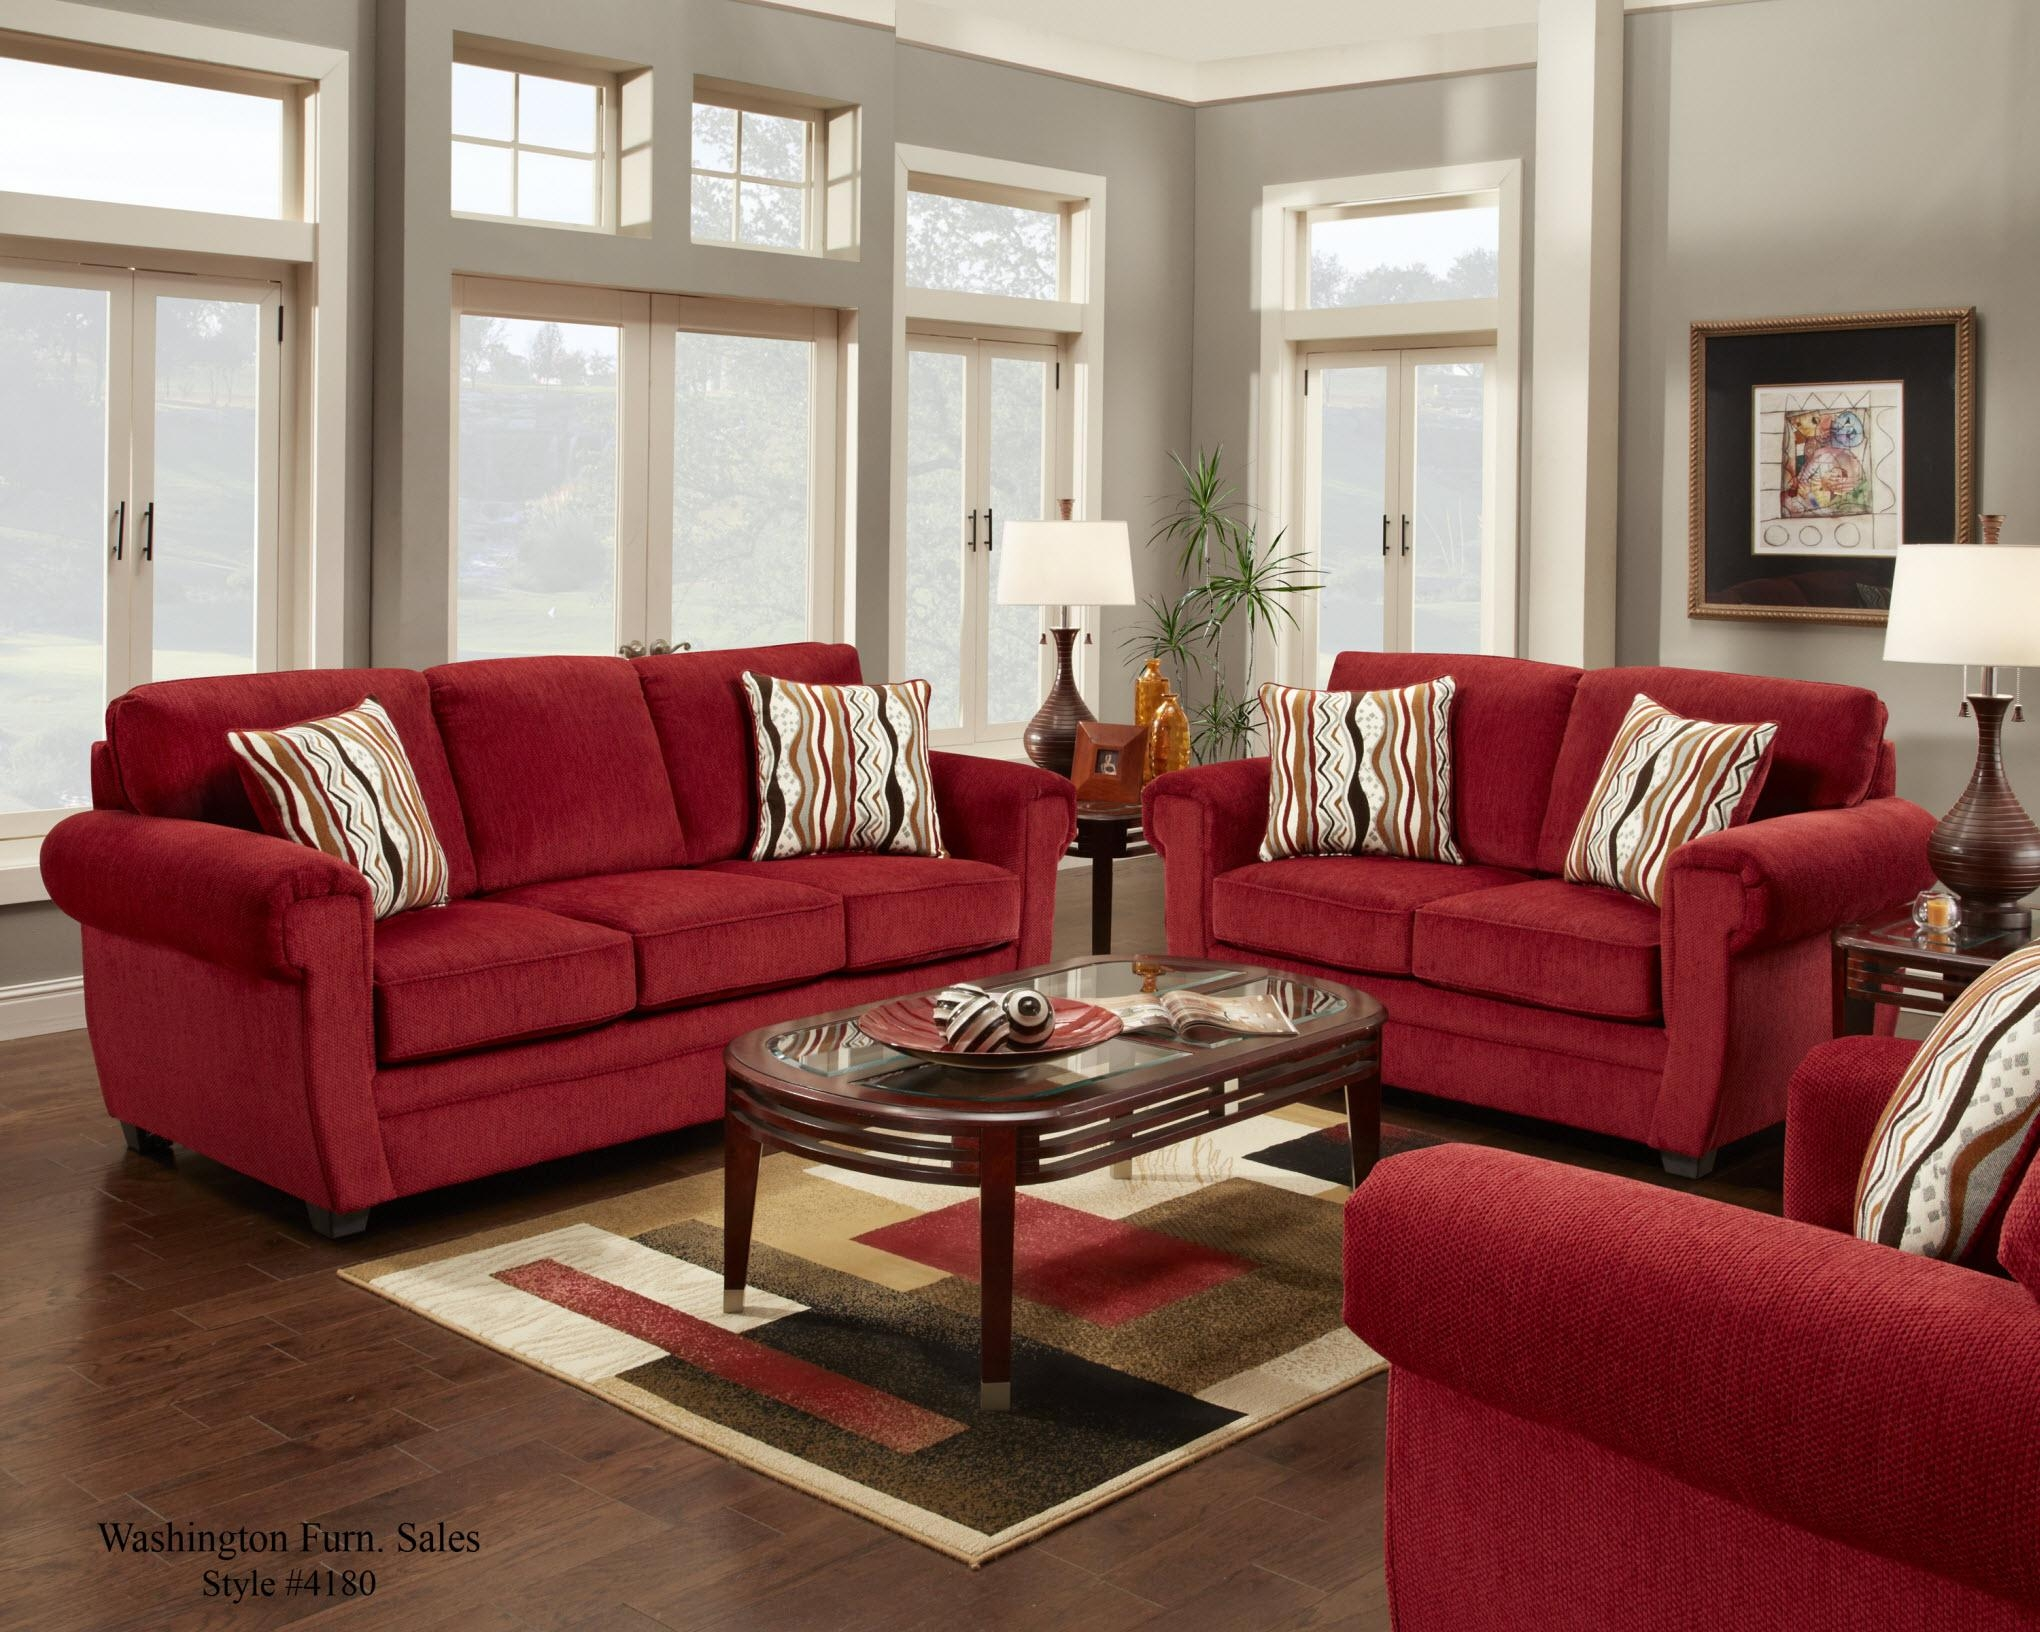 Sofas Center : Red Sofa Sets Sale Modern Fabric Set Arrangements Throughout Black And Red Sofa Sets (View 5 of 20)